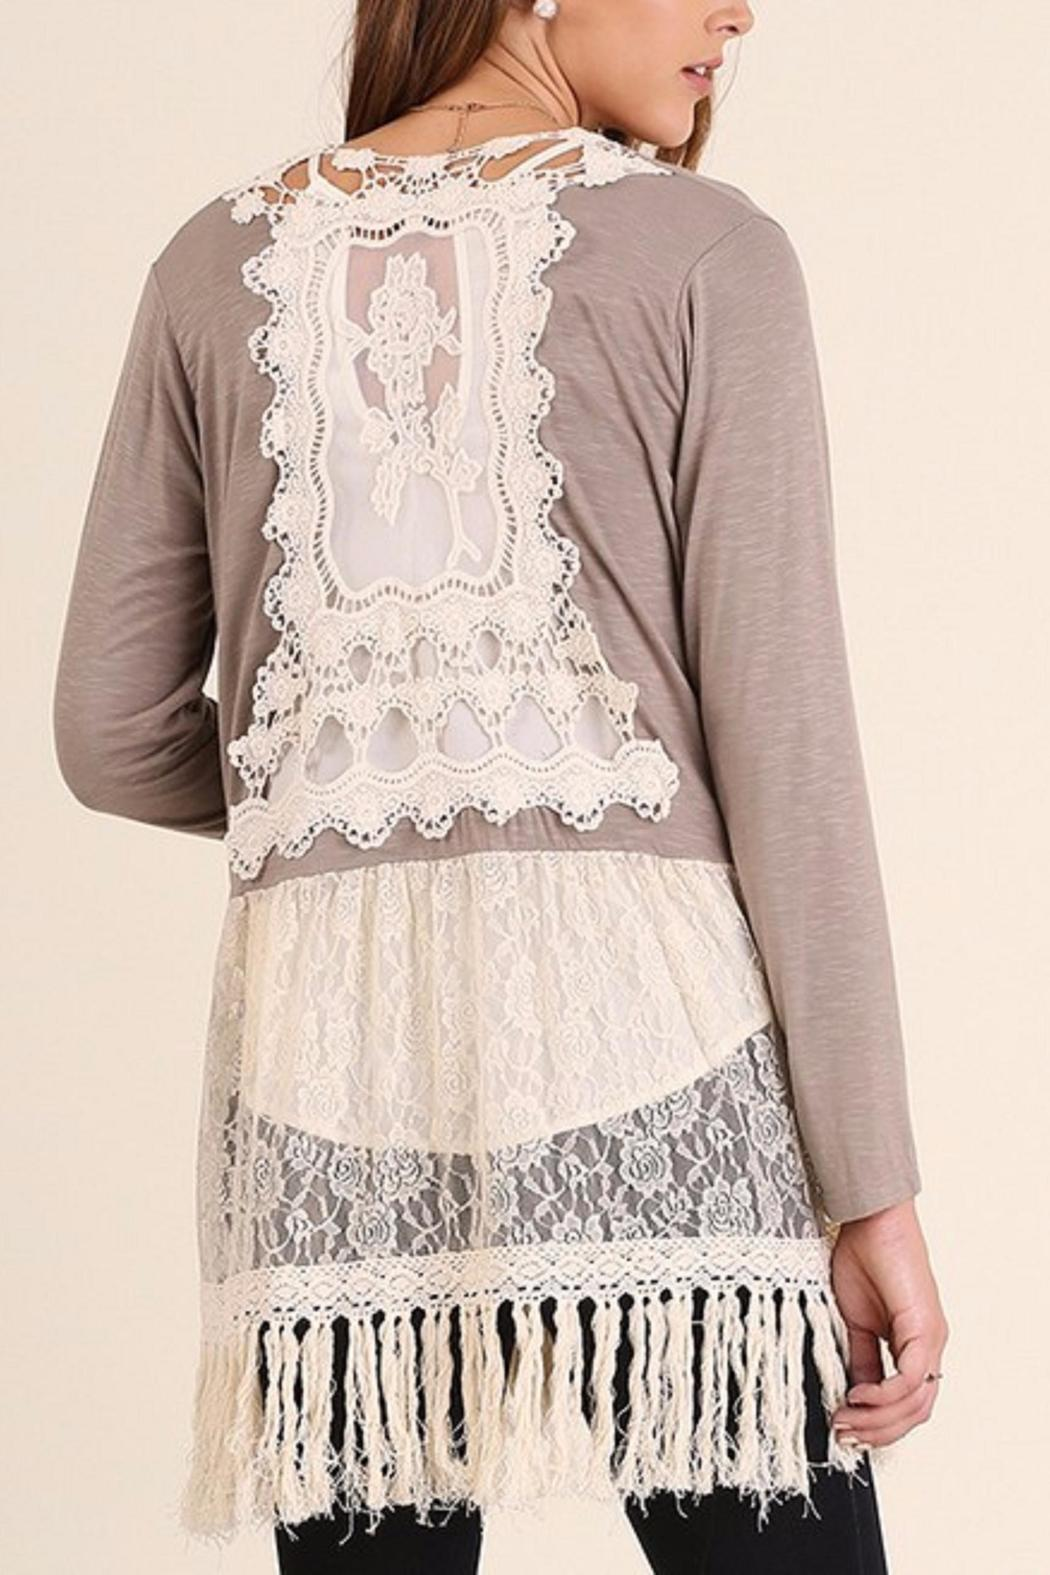 Umgee USA Lace Cardigan from Texas by Cupcaketique — Shoptiques